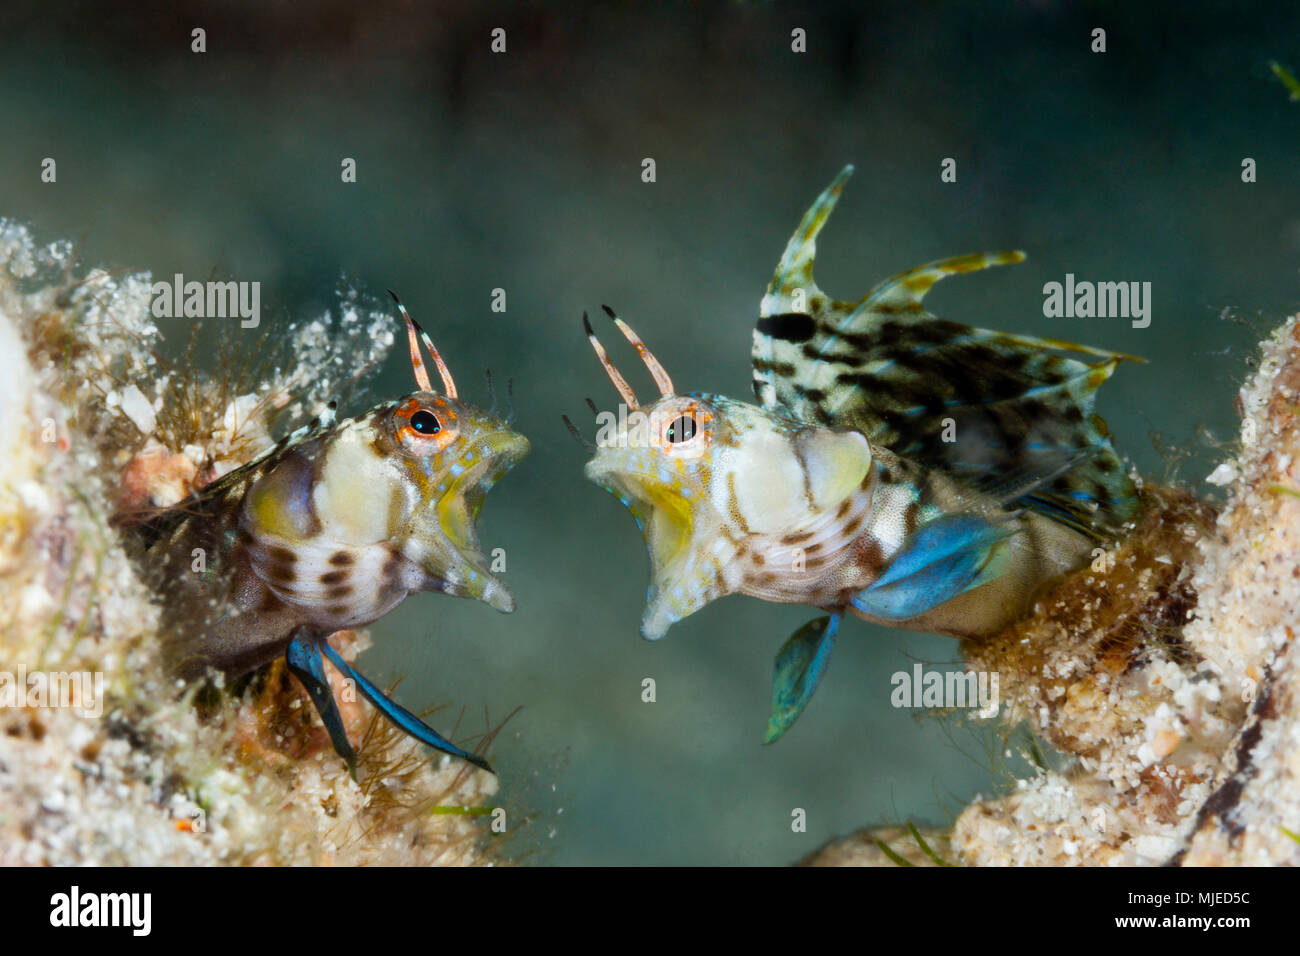 Elusive Signal Blennies in threatening posture, Emblemaria walkeri, La Paz, Baja California Sur, Mexico - Stock Image